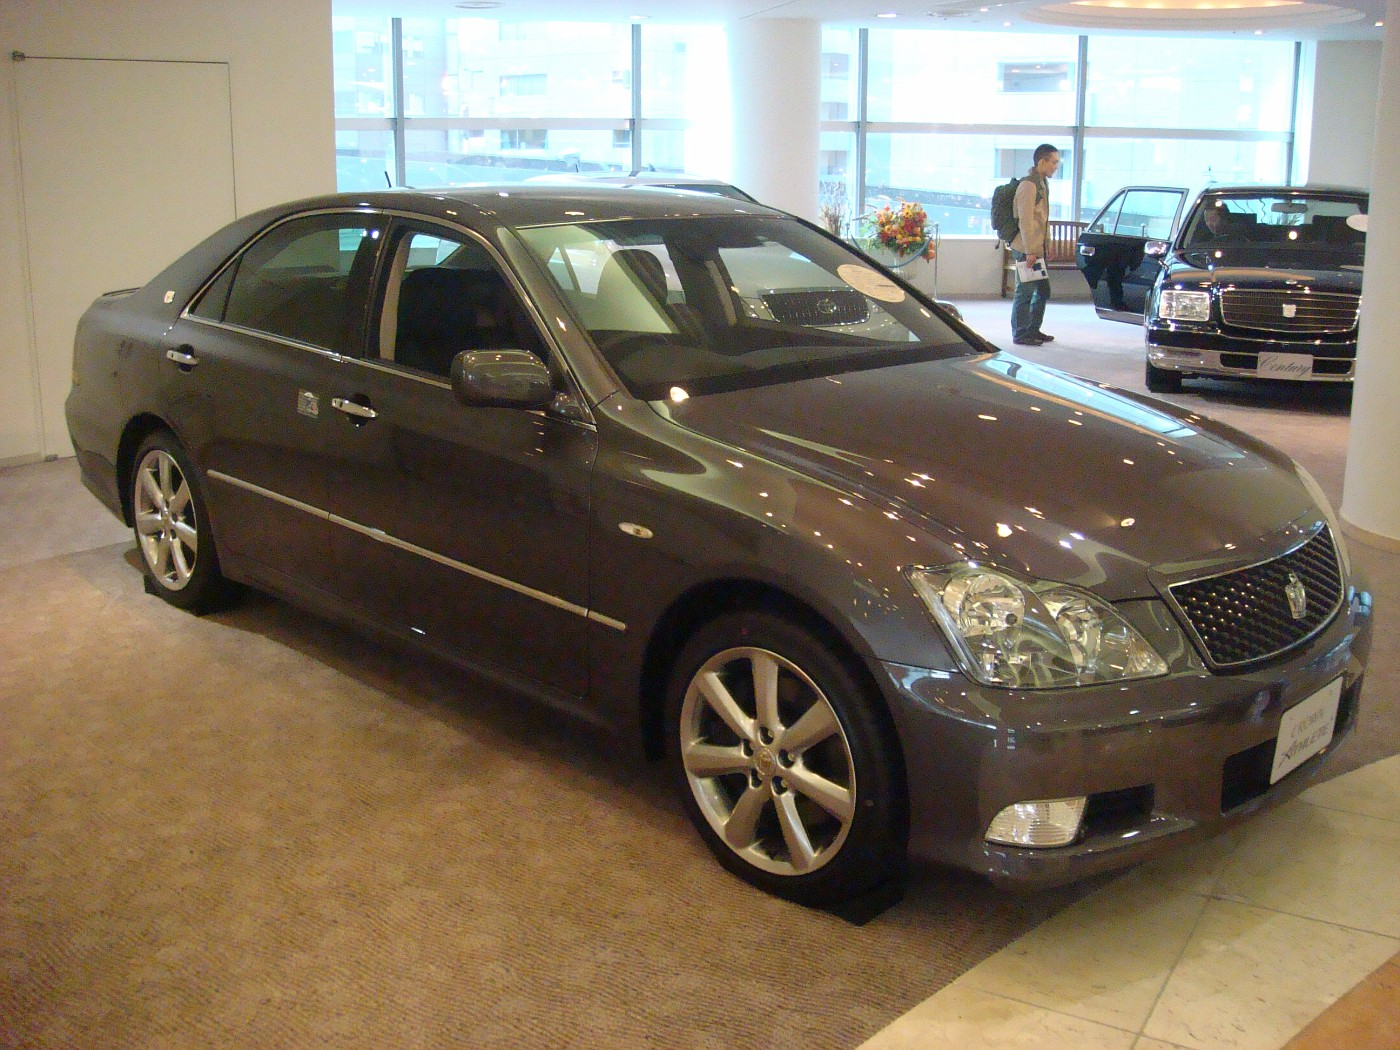 TOYOTA CROWN 3.5 ATHLETE | 2008 | PEARL | 89,995 km ...